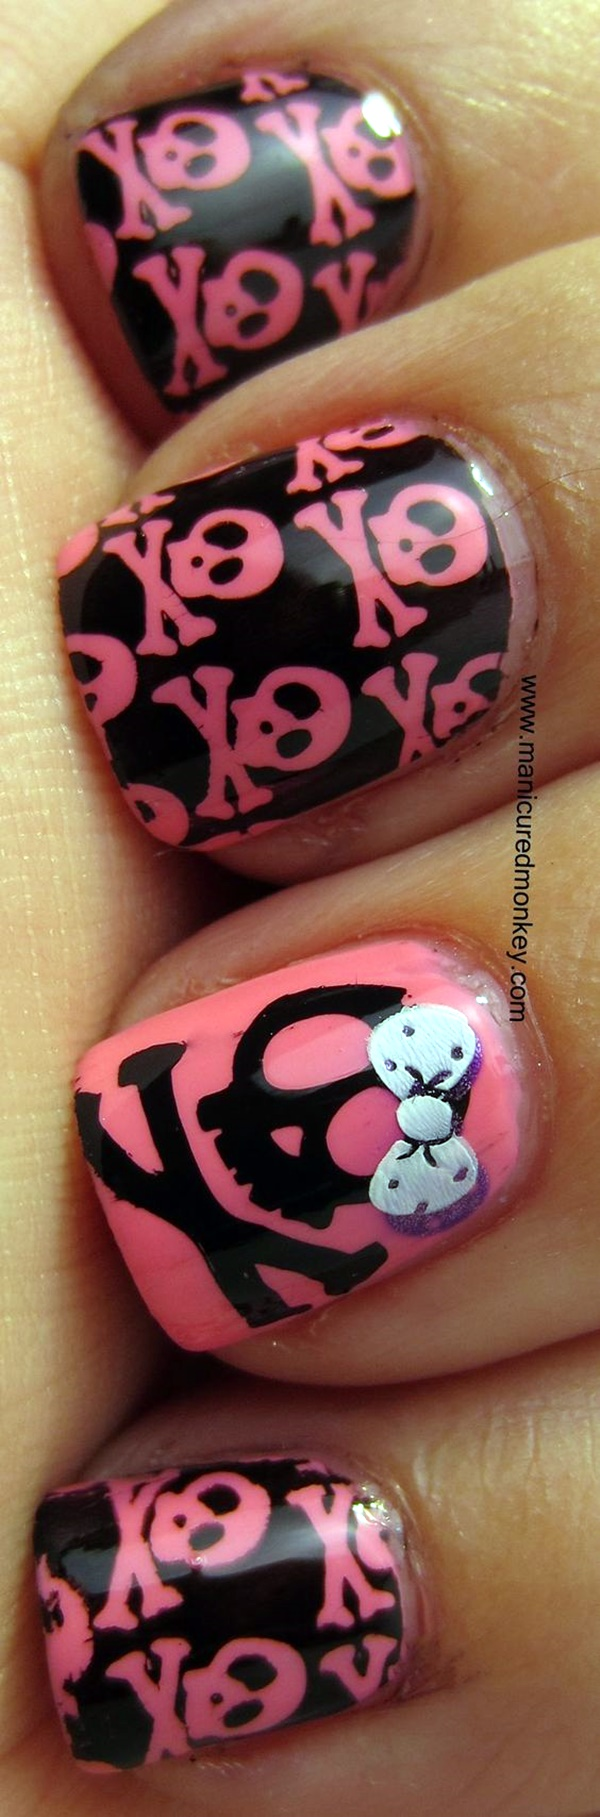 cute-pink-and-black-nails-designs-19